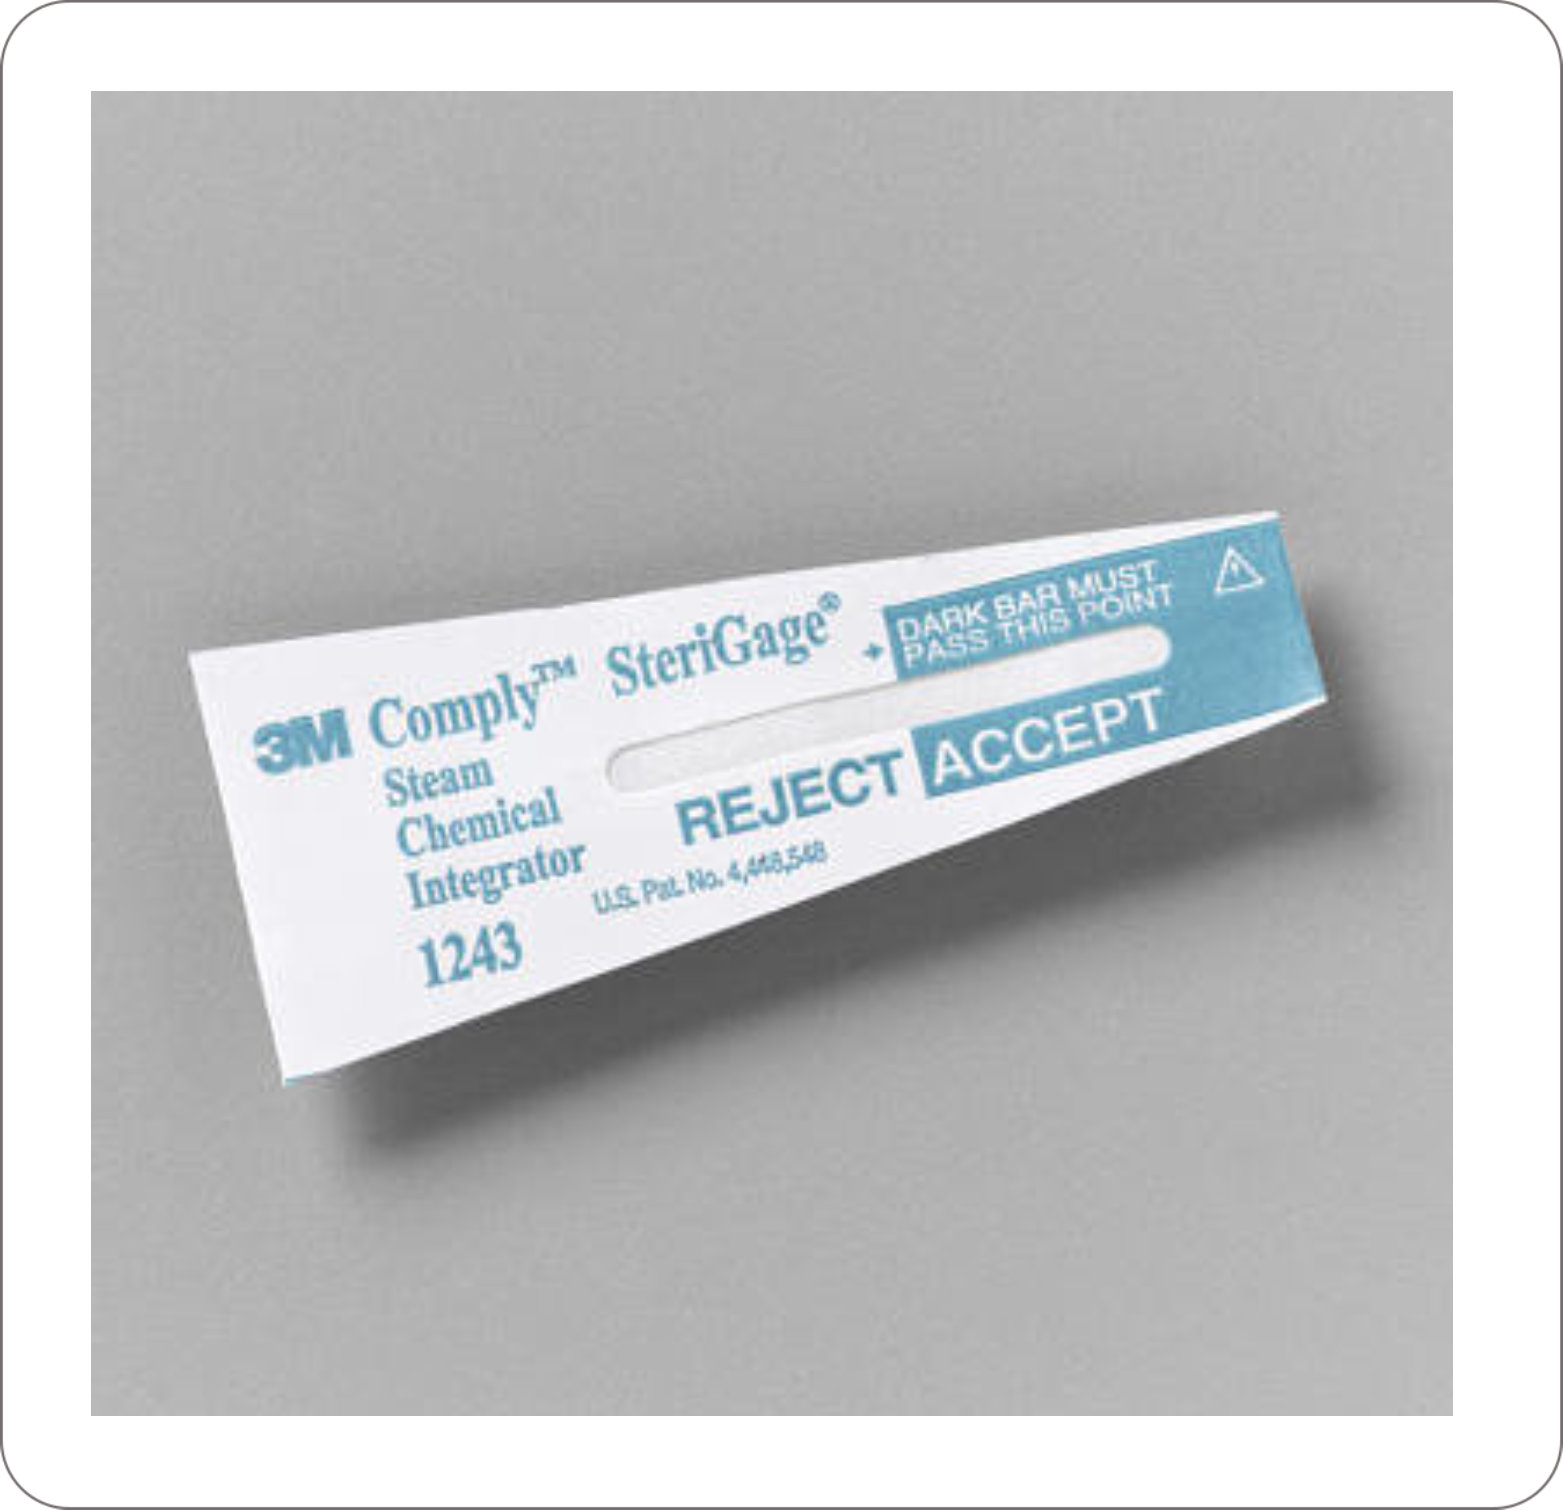 Chemical Integrator Comply™ SteriGage 1243B